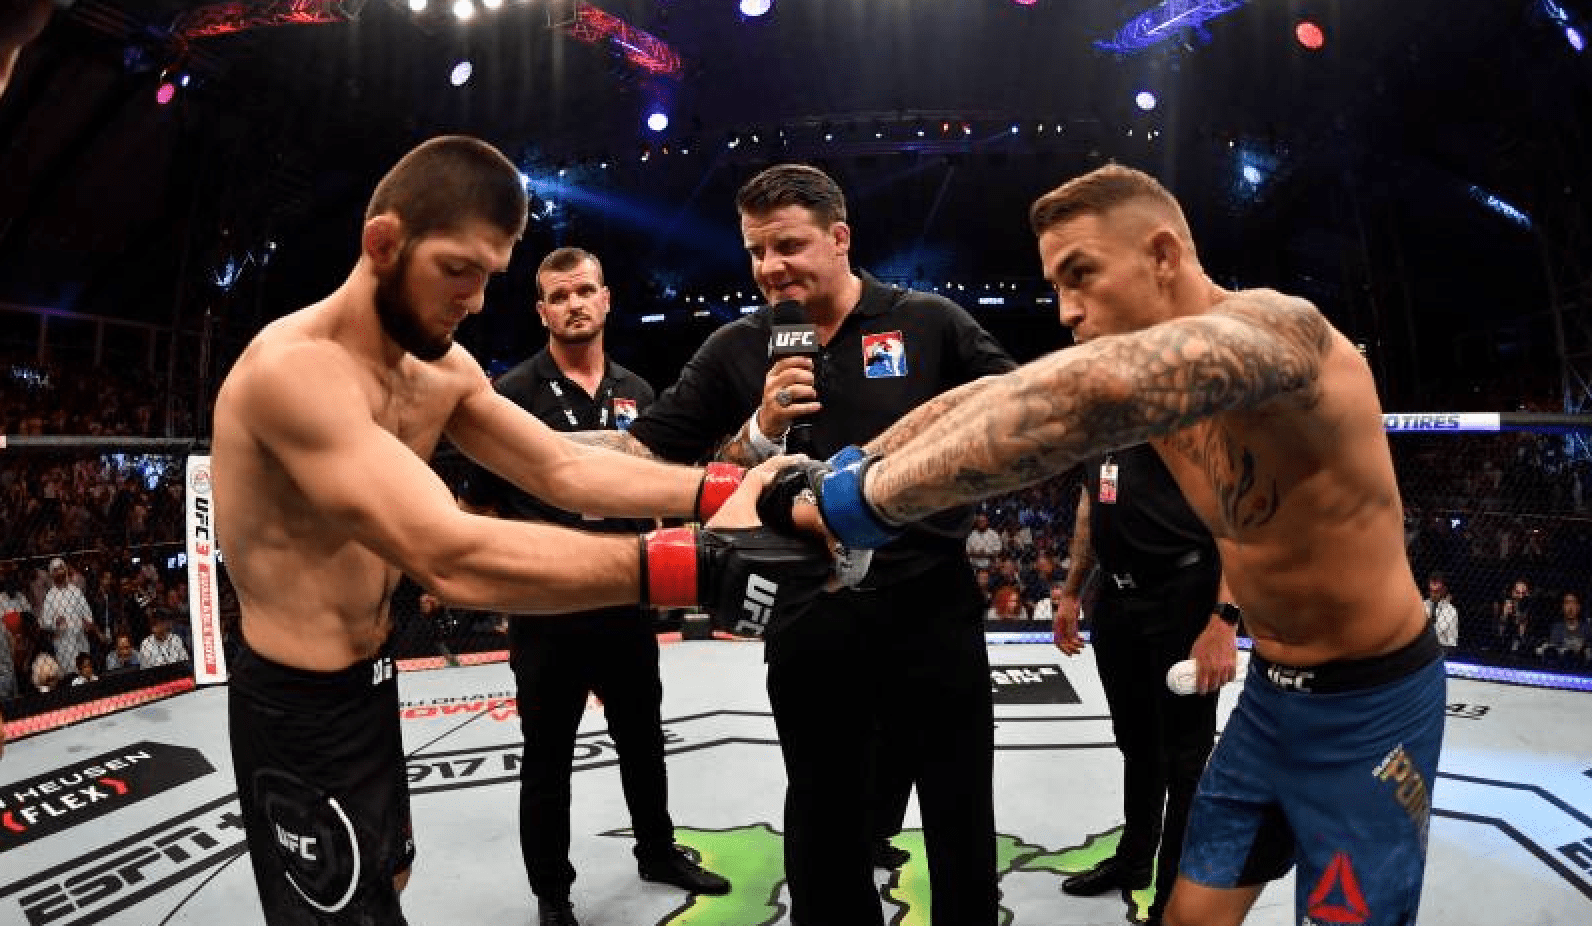 This Is How The MMA World Reacted To UFC 242